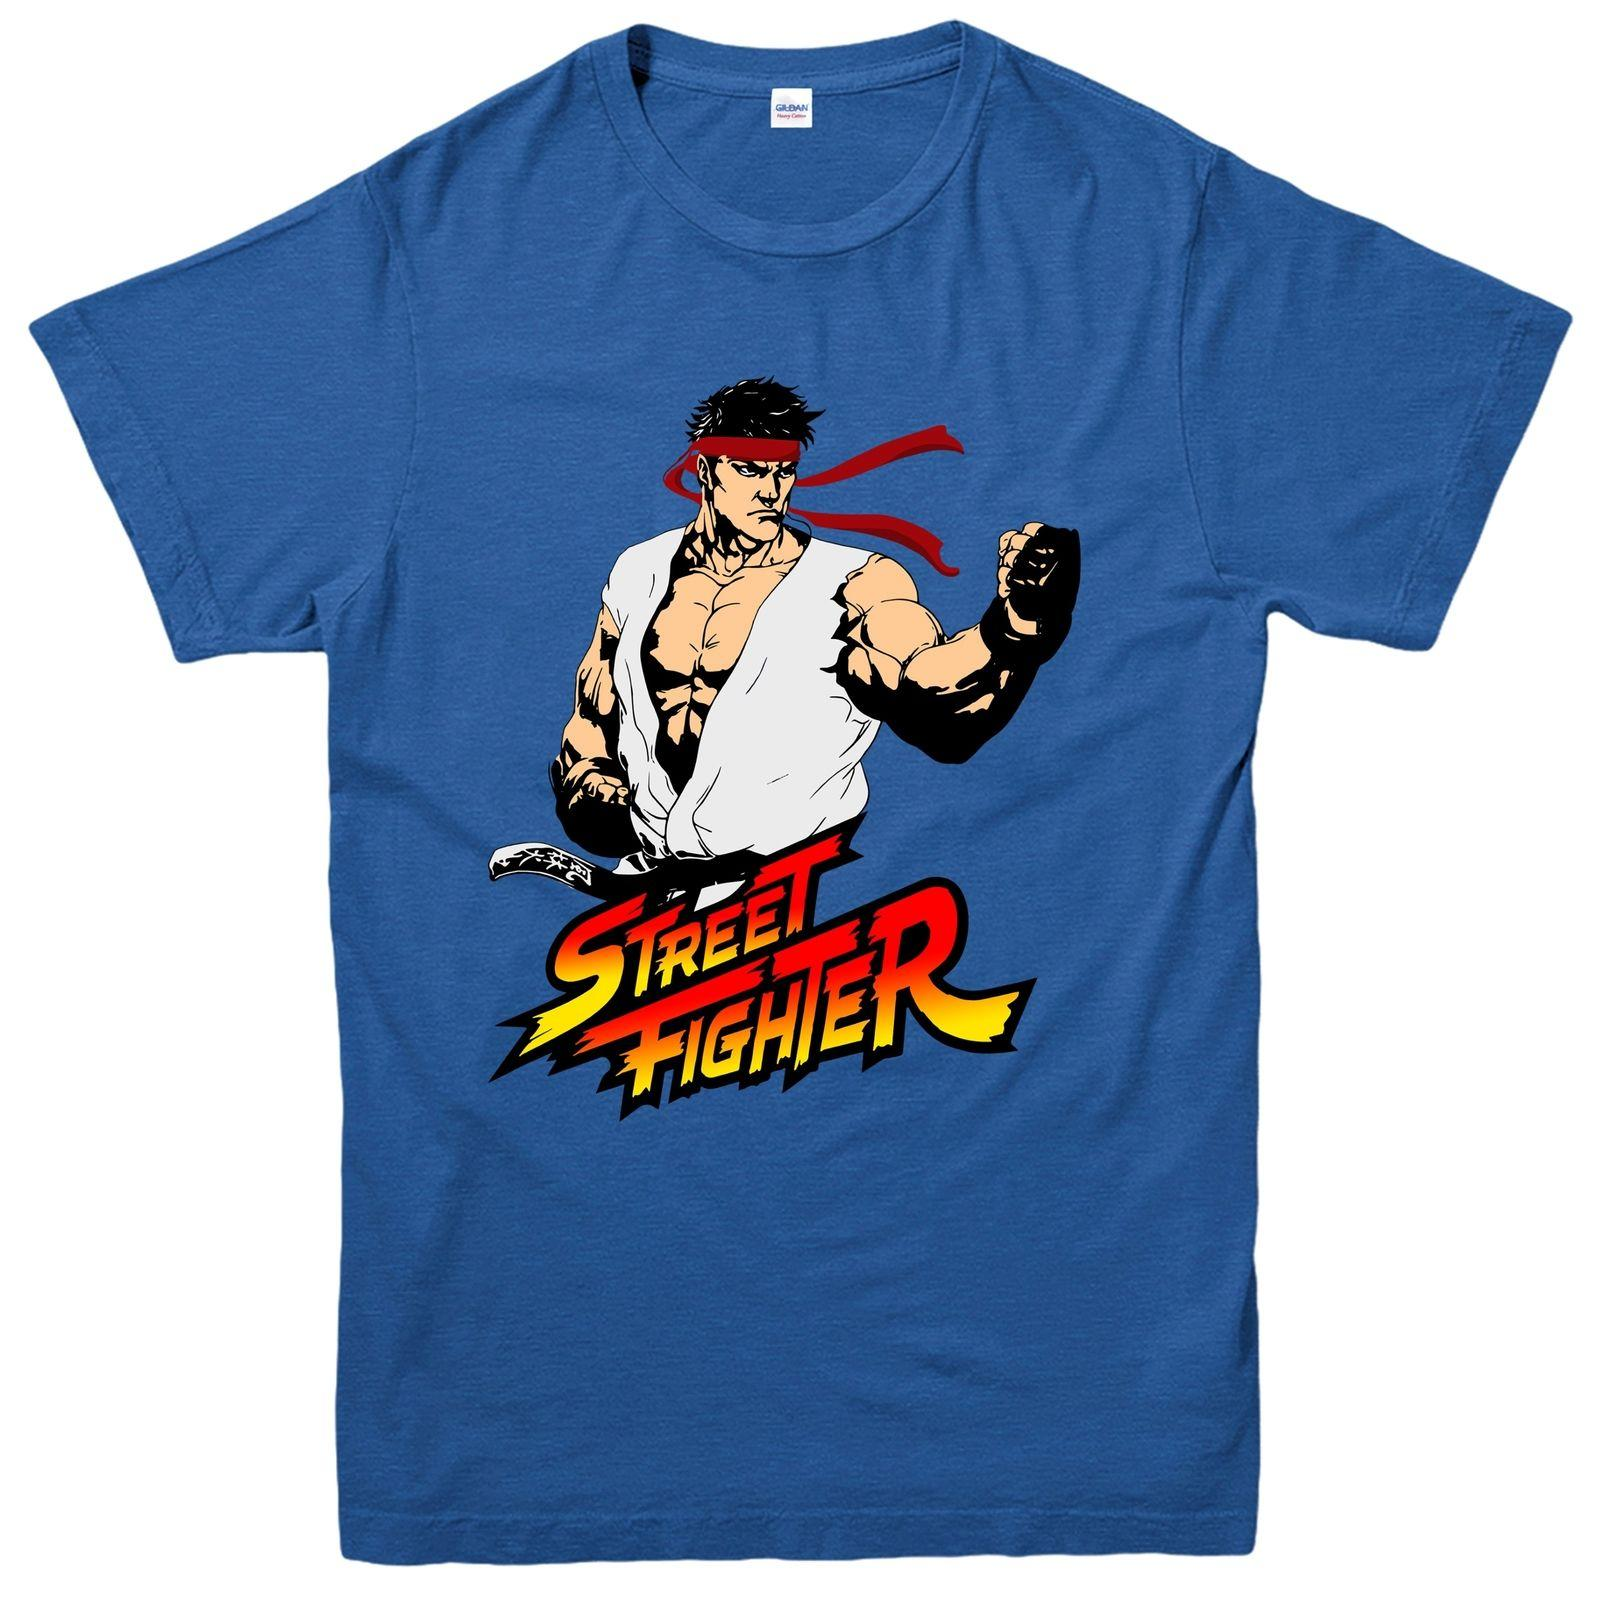 Ryu Street Fighter T Shirt Fictional Super Fighter Video Game Tee Top T Shirt Design Template Funny T Shirt From Xsy12tshirt 15 09 Dhgate Com